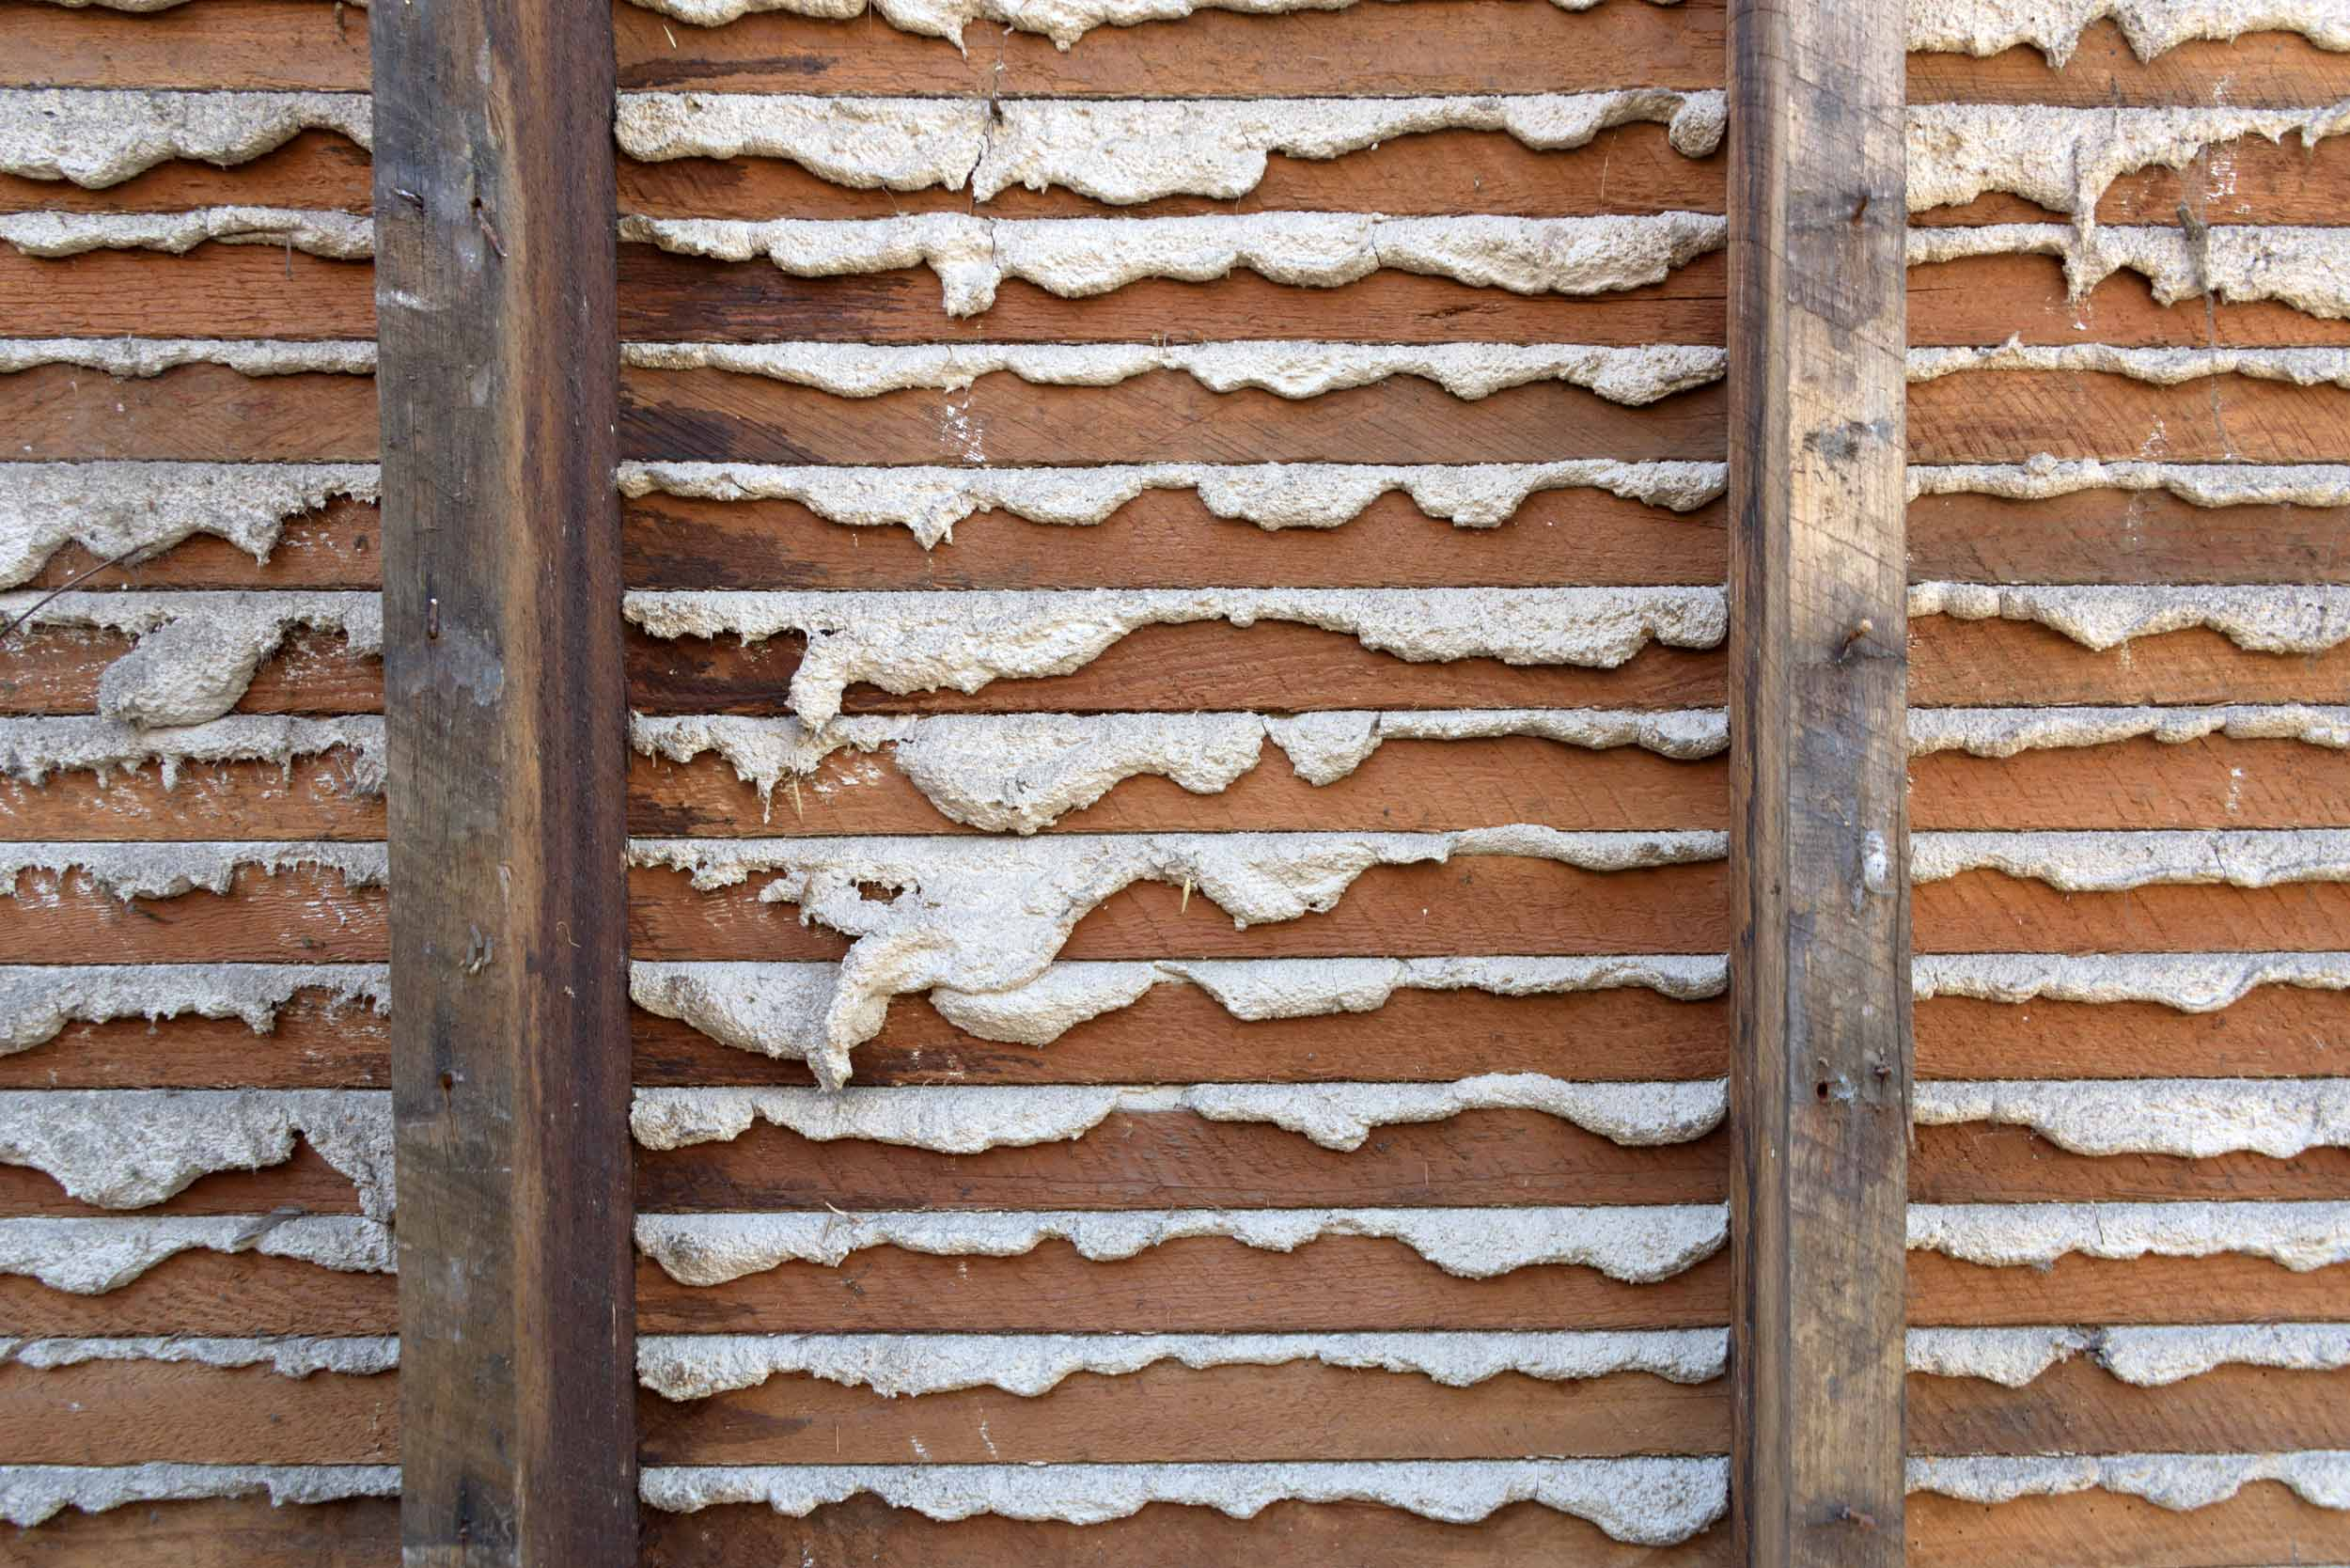 Horse Hair Plaster Walls In Home Renovation